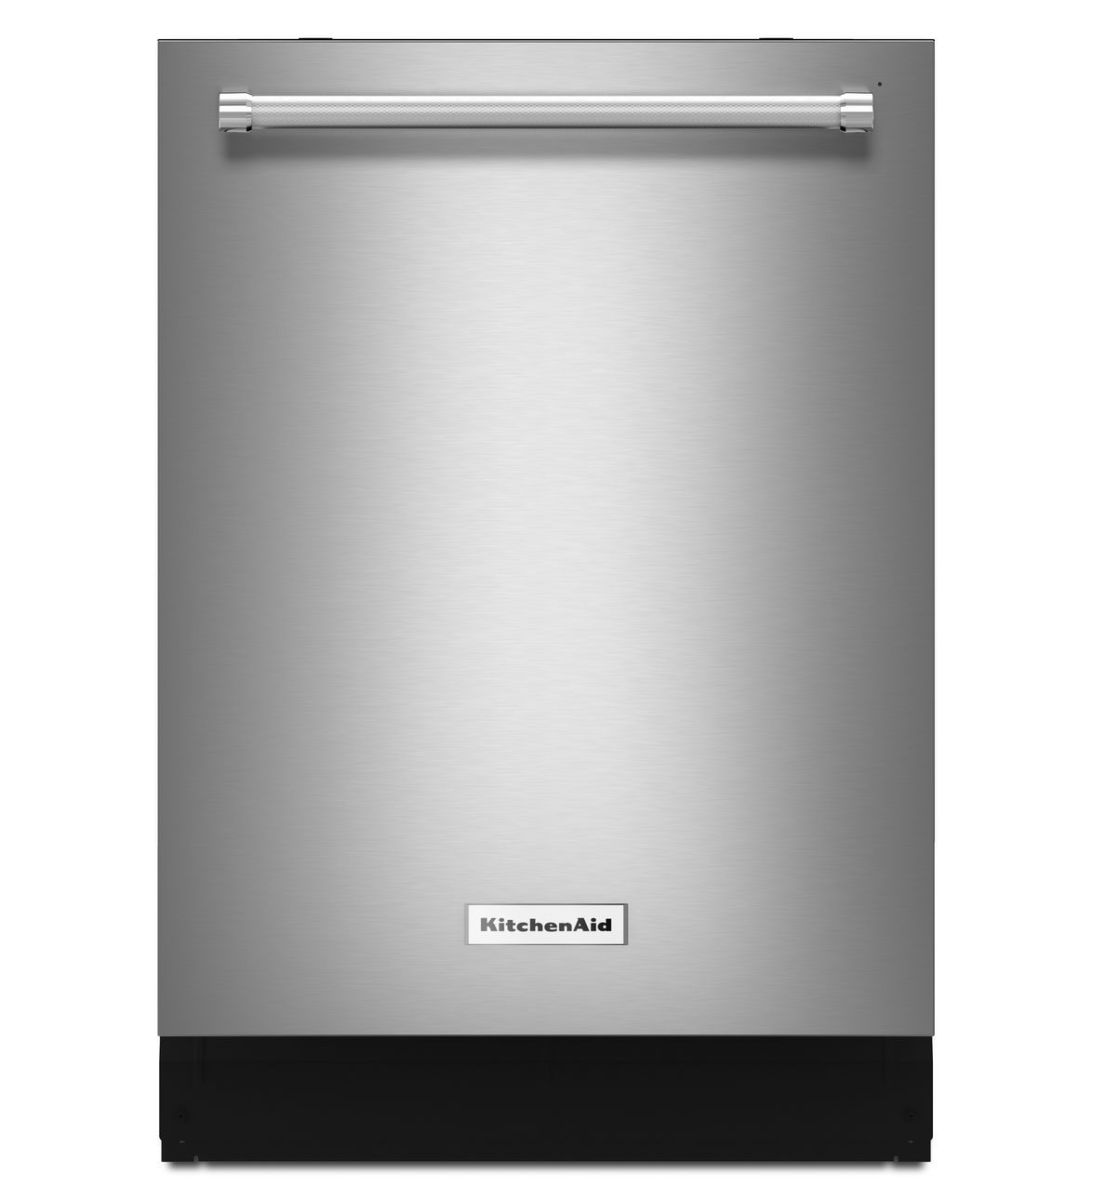 KitchenAid Front Control Dishwasher In Stainless Steel